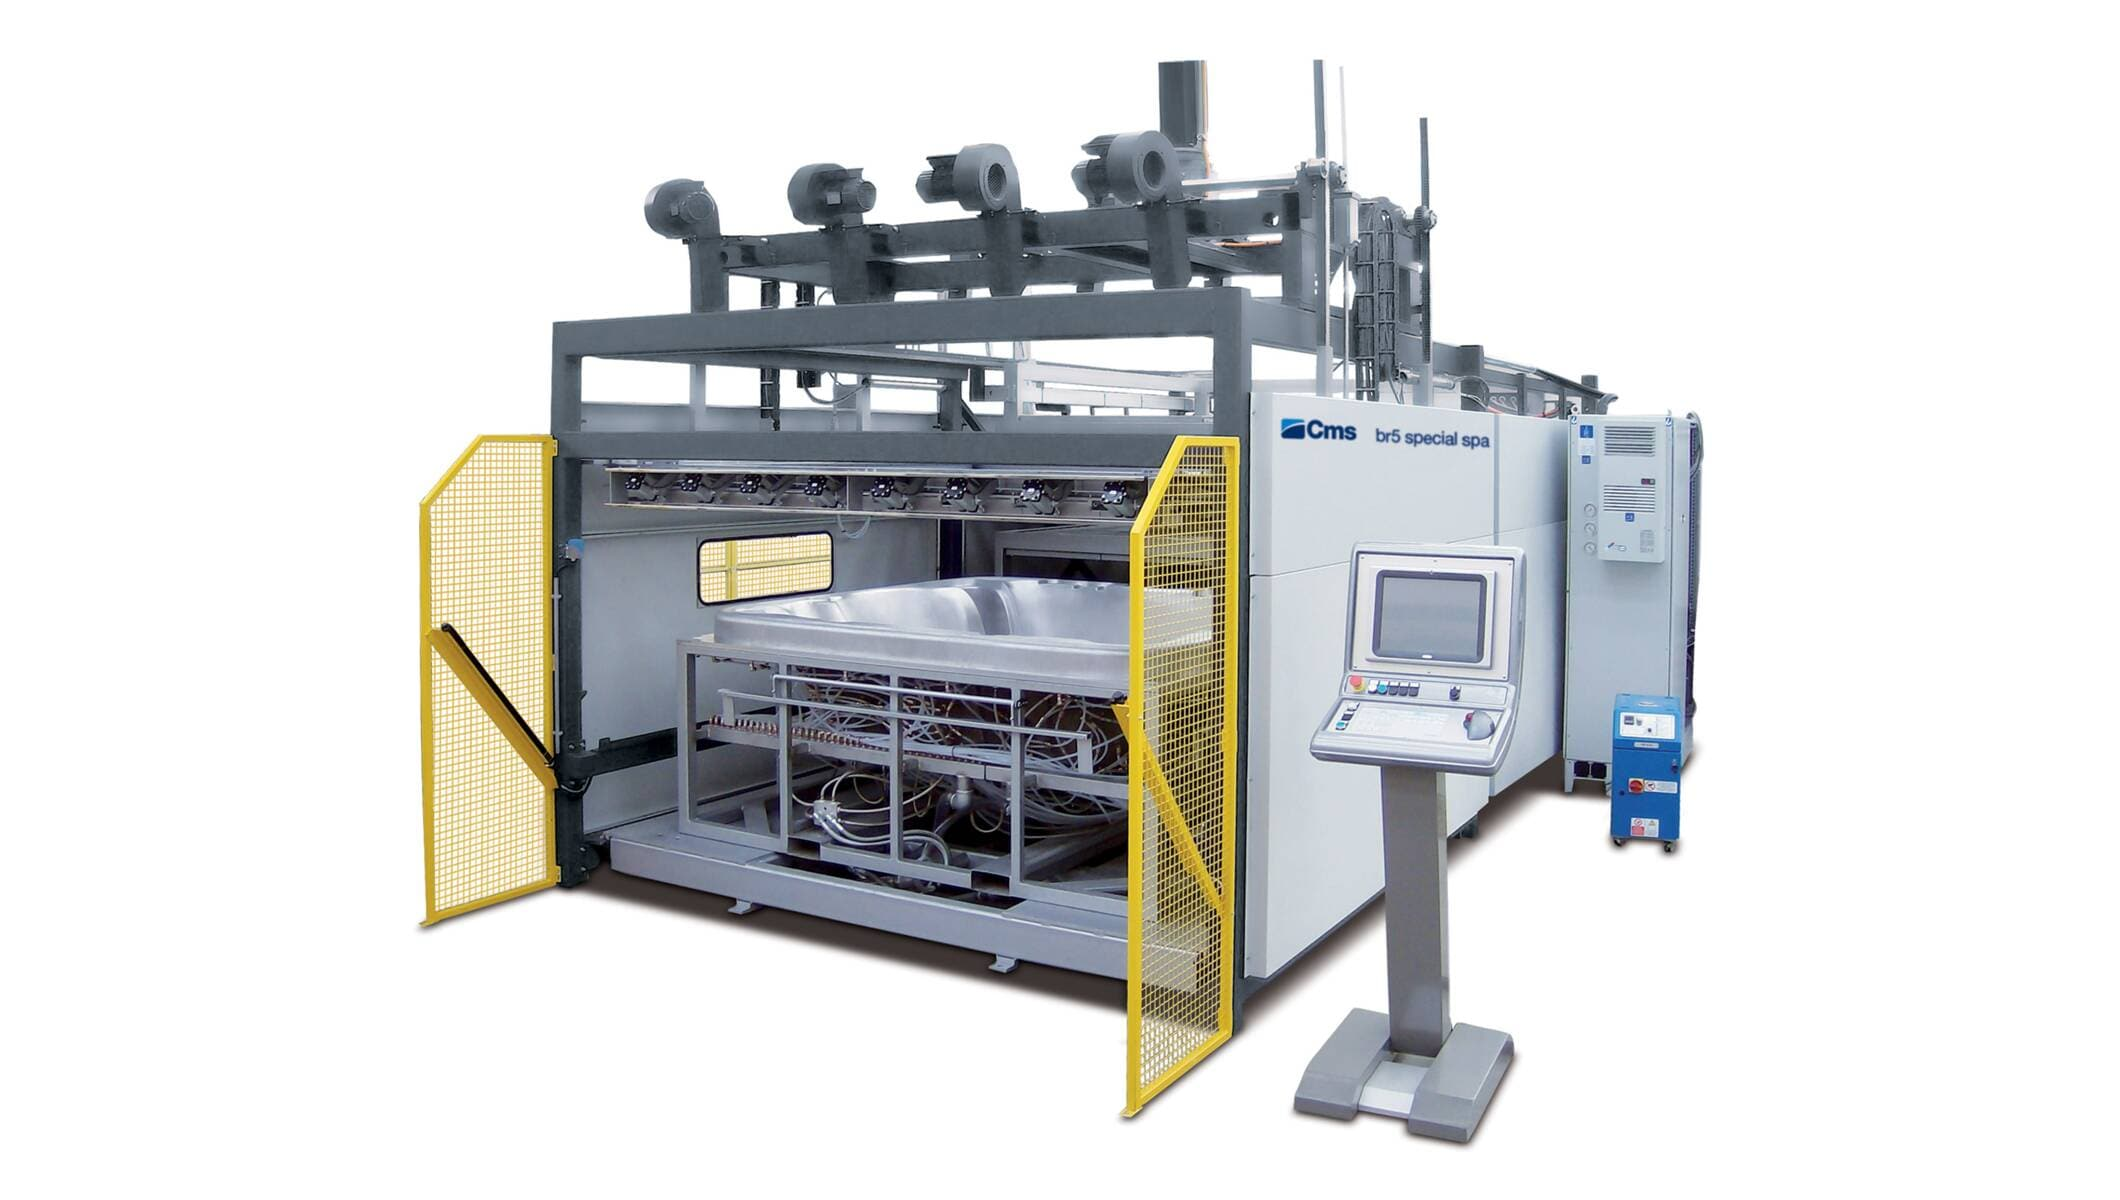 Plastic processing - Thermoforming machines - br5 special spa